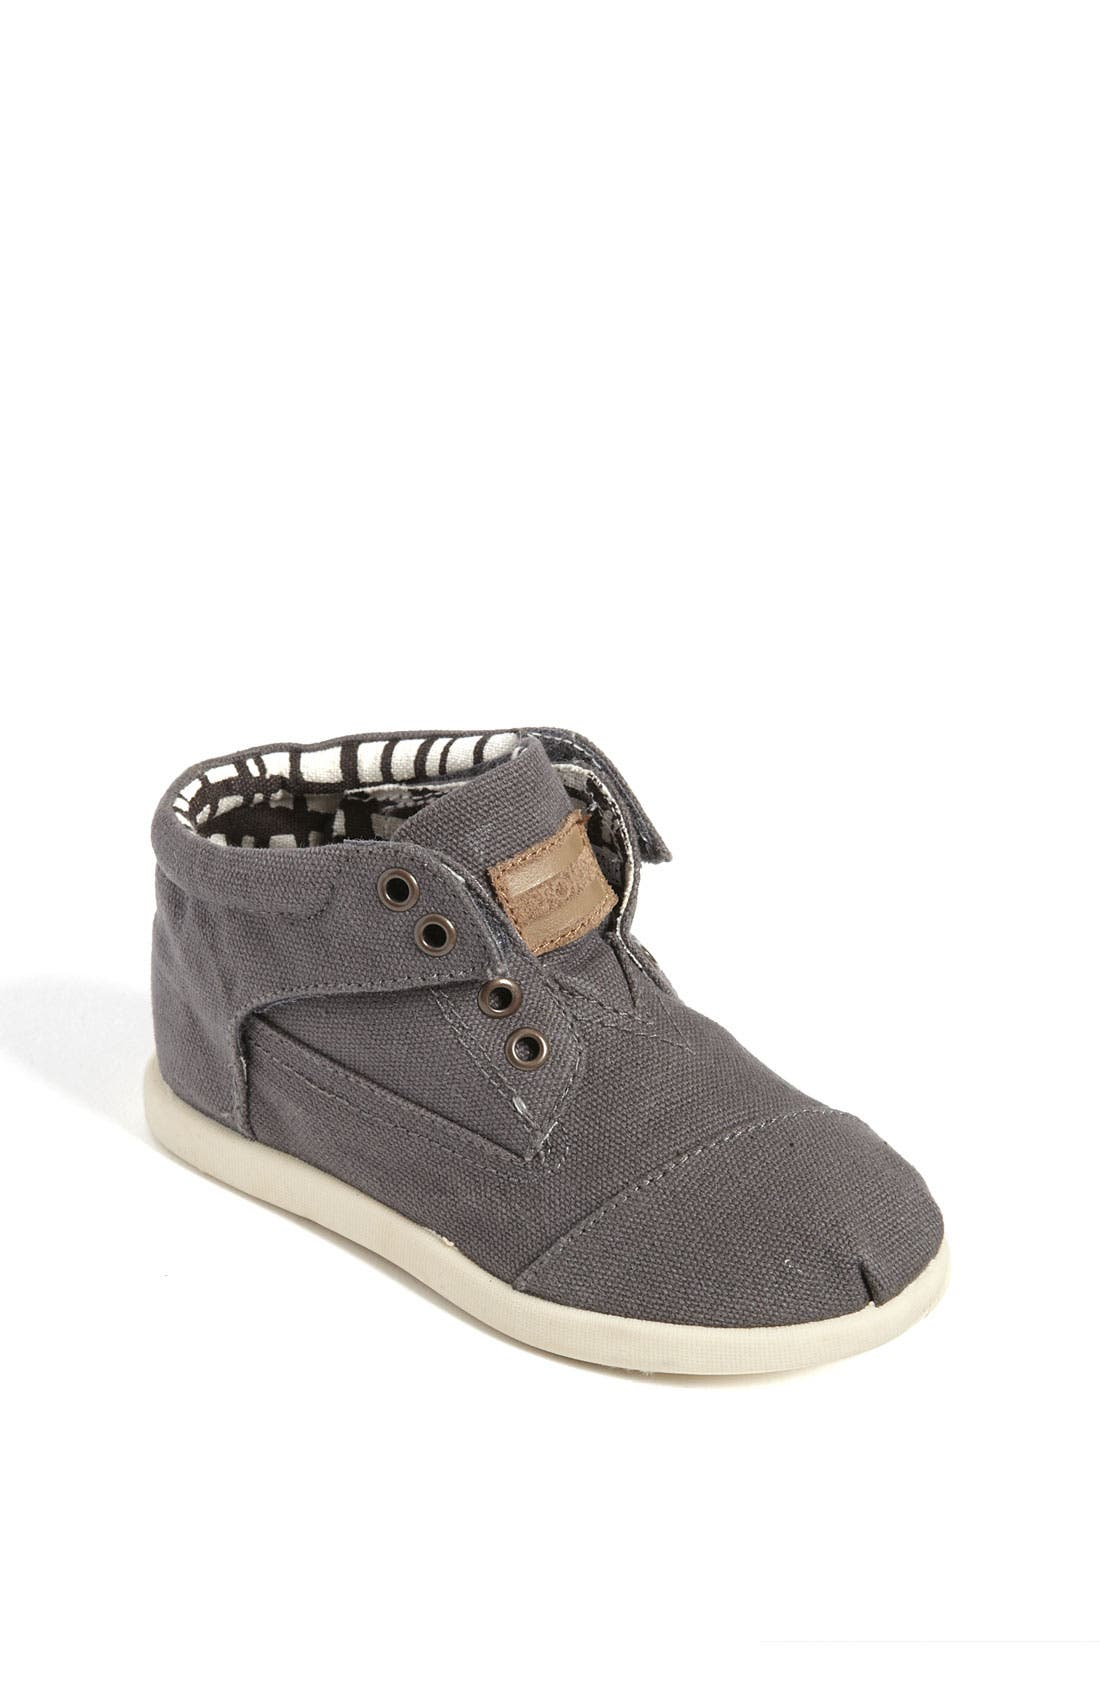 Alternate Image 1 Selected - TOMS 'Botas - Tiny' Canvas Boot (Baby, Walker & Toddler)